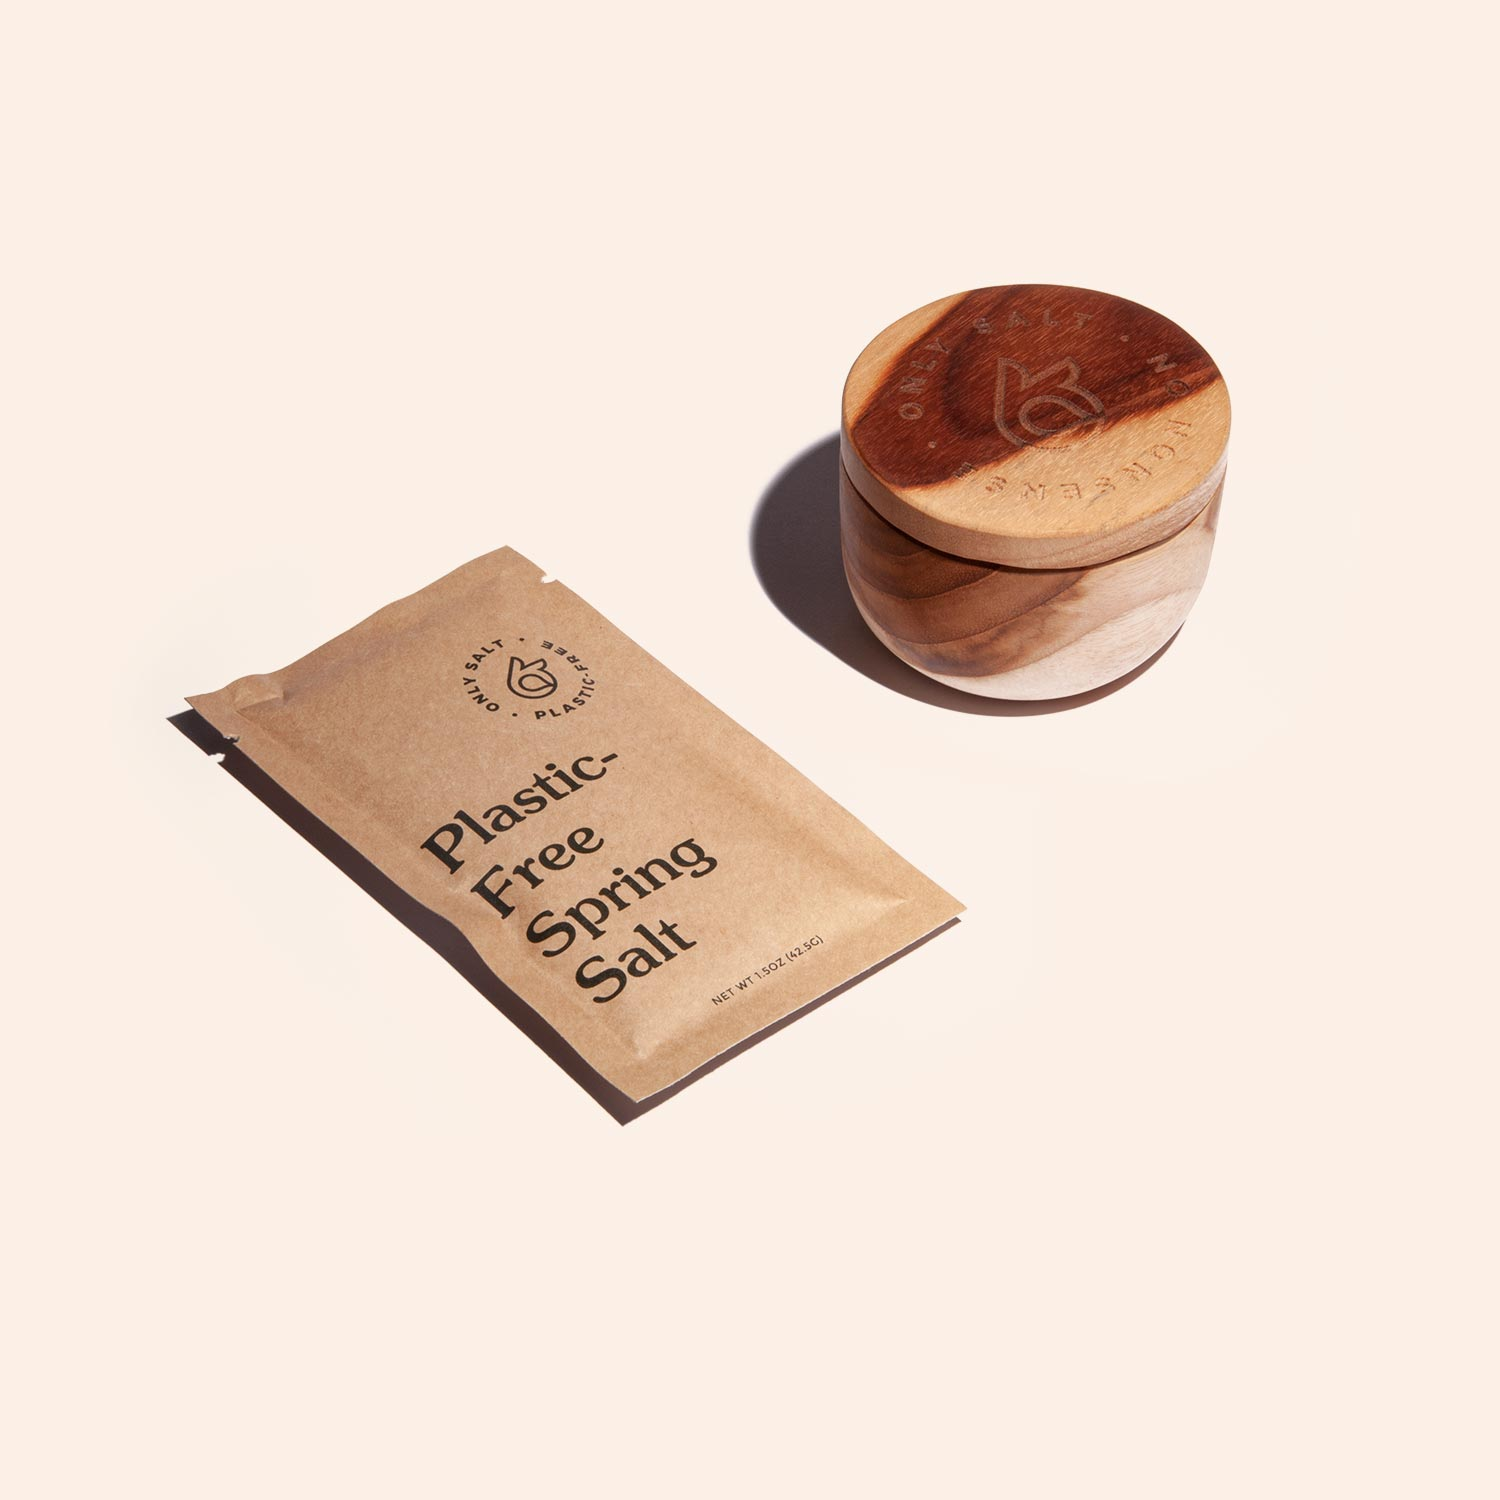 Spring salt packet lays next to a wooden pinch bowl by Only.